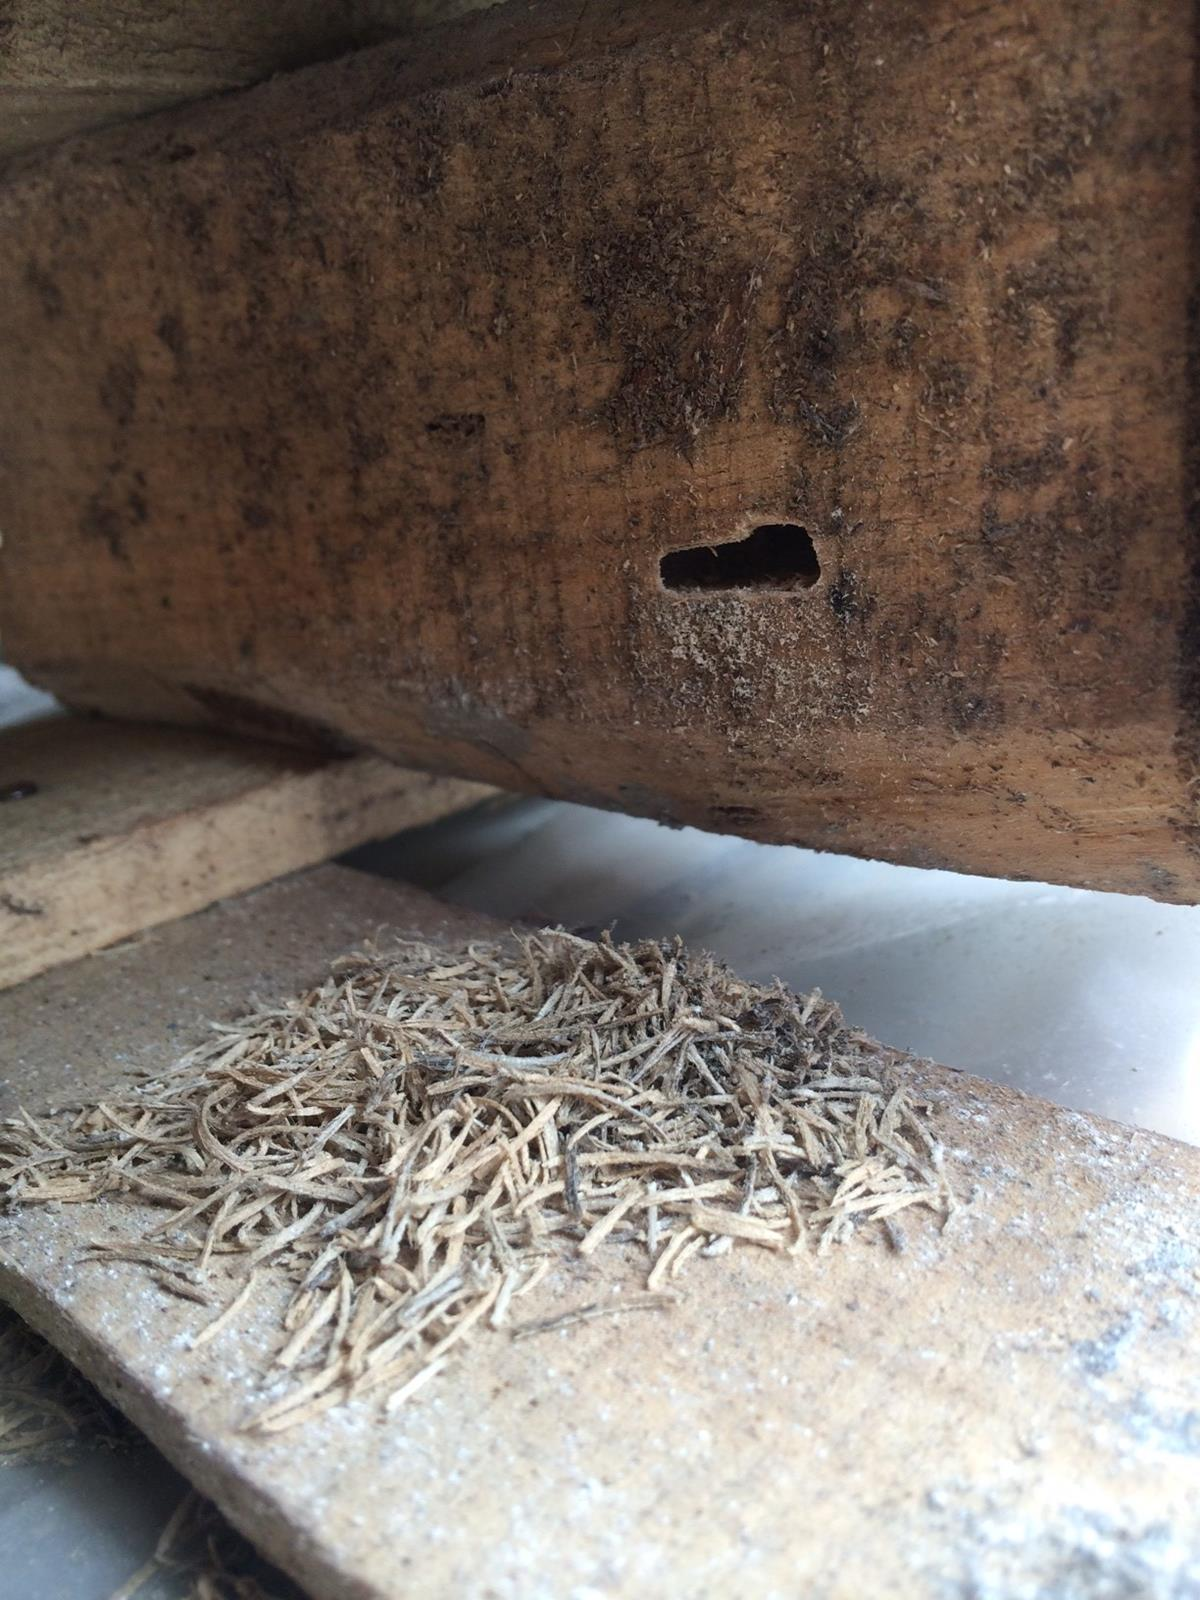 Evidence of live insect activity in wooden packaging material in imported freight intercepted by Forestry Commission Plant Health Service inspectors this year